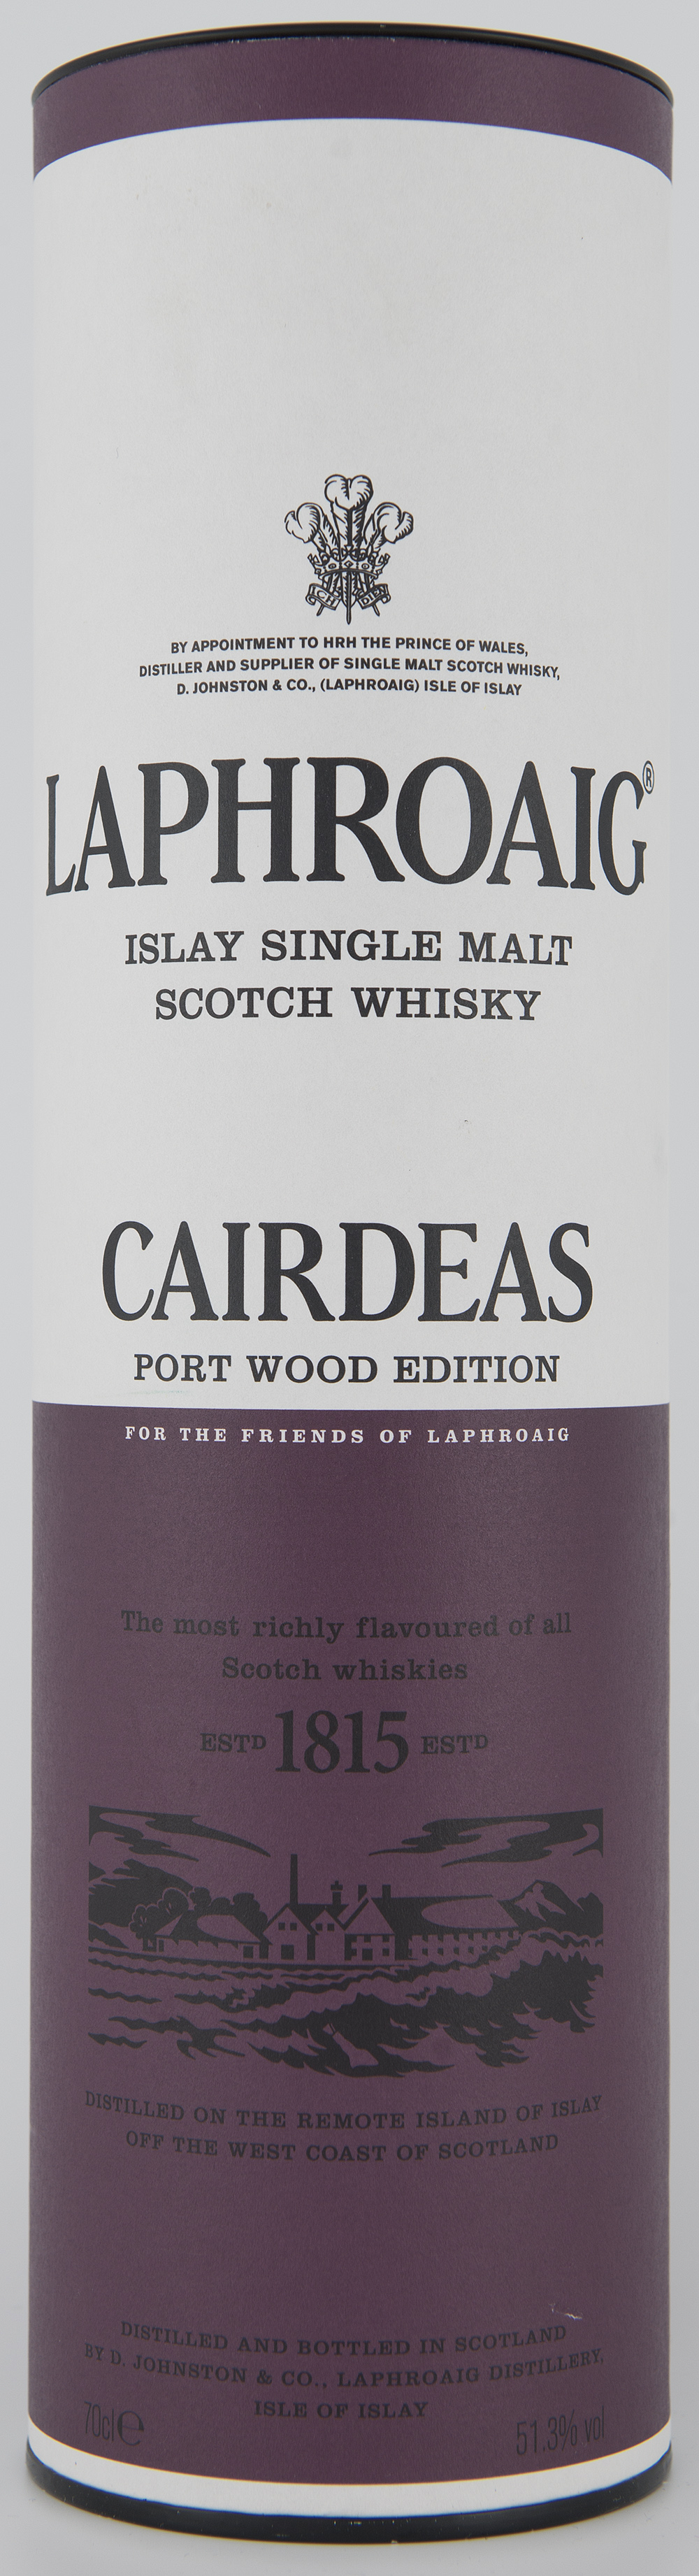 Billede: DSC_3216 Laphroaig Cairdeas Port Wood Edition (Feis Isle 2013) - tube front.jpg